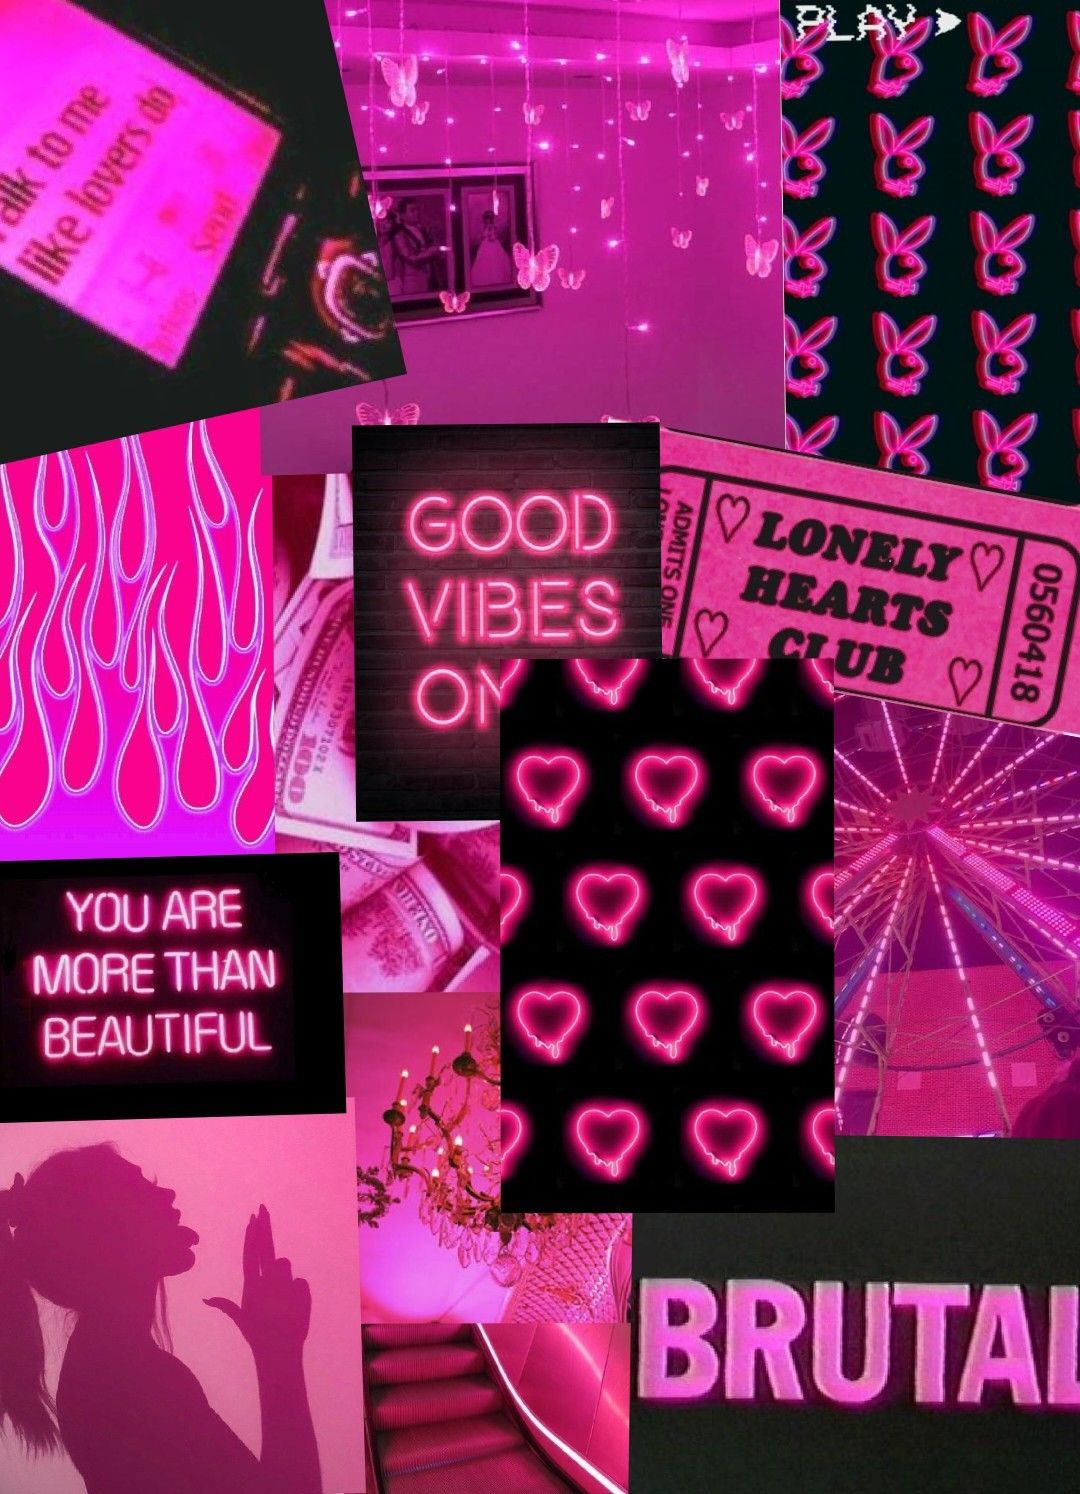 Hot Pink Aesthetic Wallpaper Collage Pretty Wallpaper Iphone Pink Wallpaper Iphone Aesthetic Iphone Wallpaper